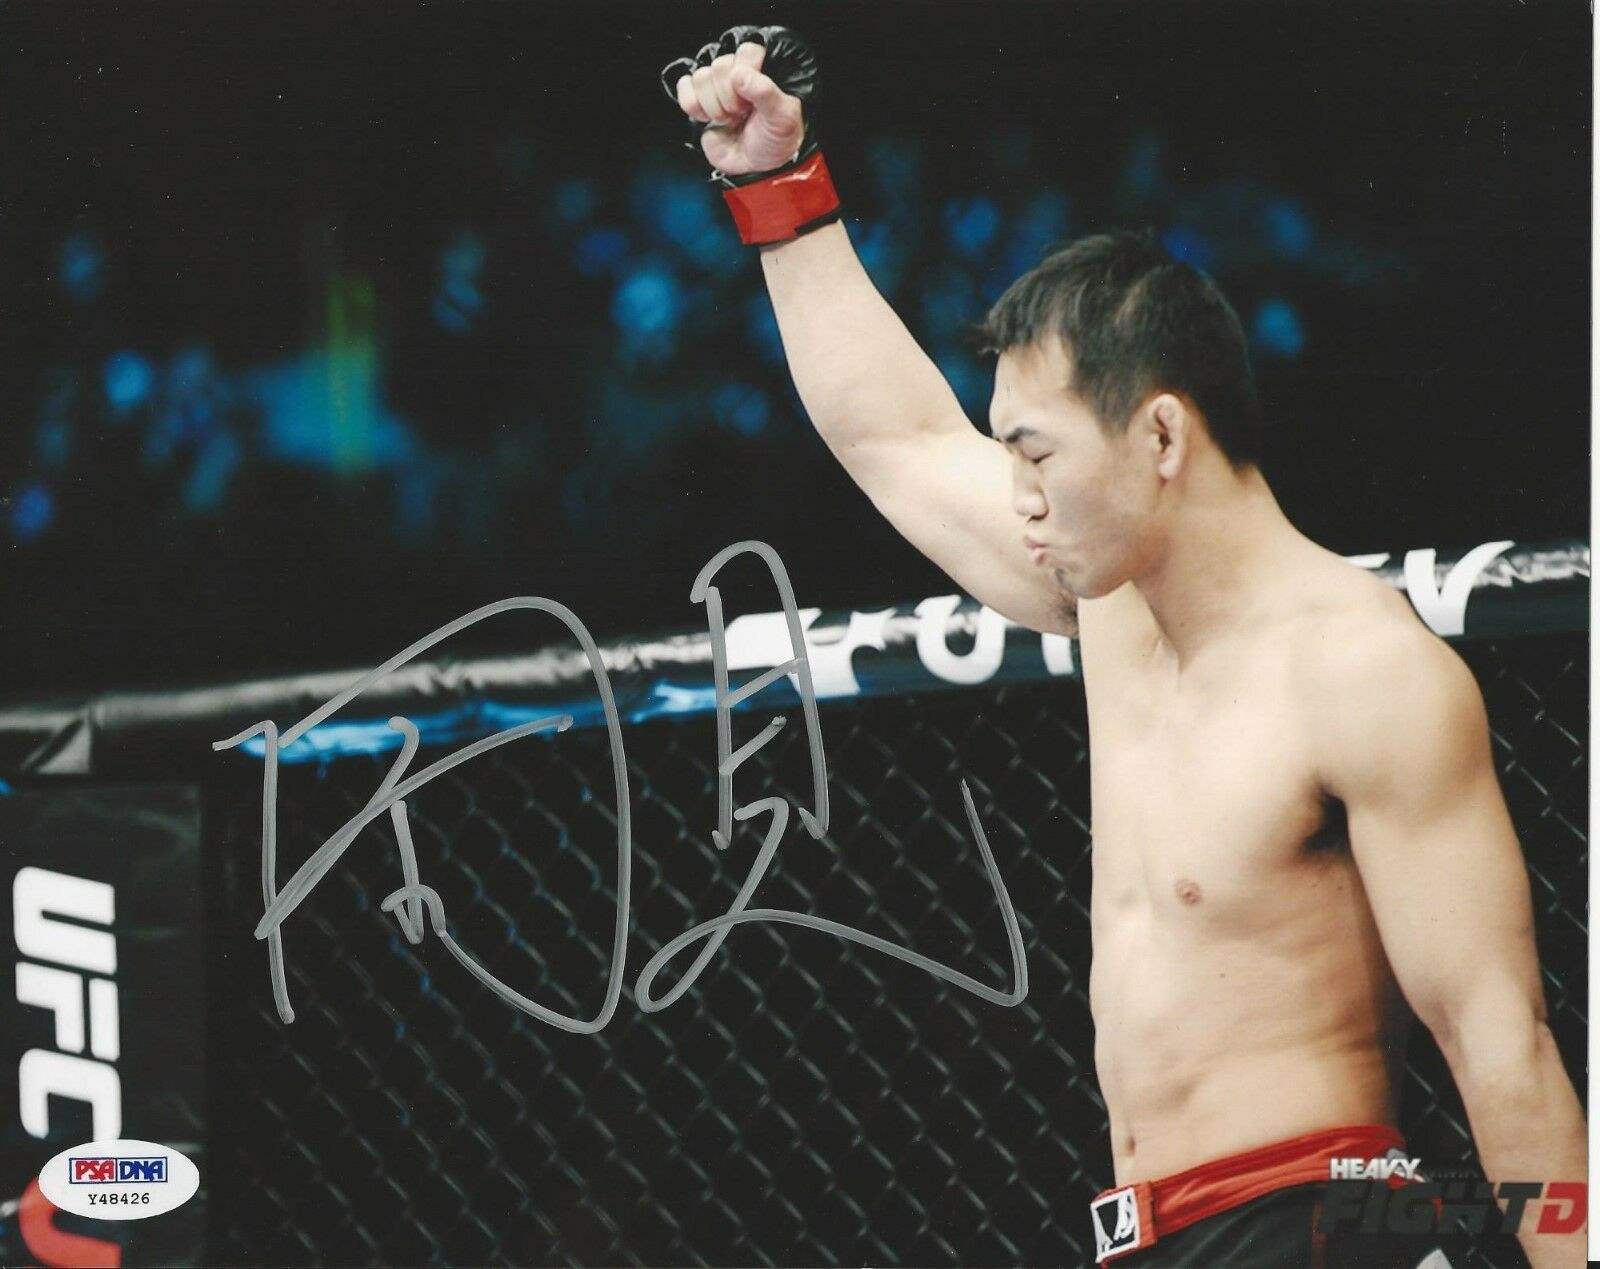 Yushin Okami UFC Fighter signed 8x10 photo PSA/DNA # Y48426